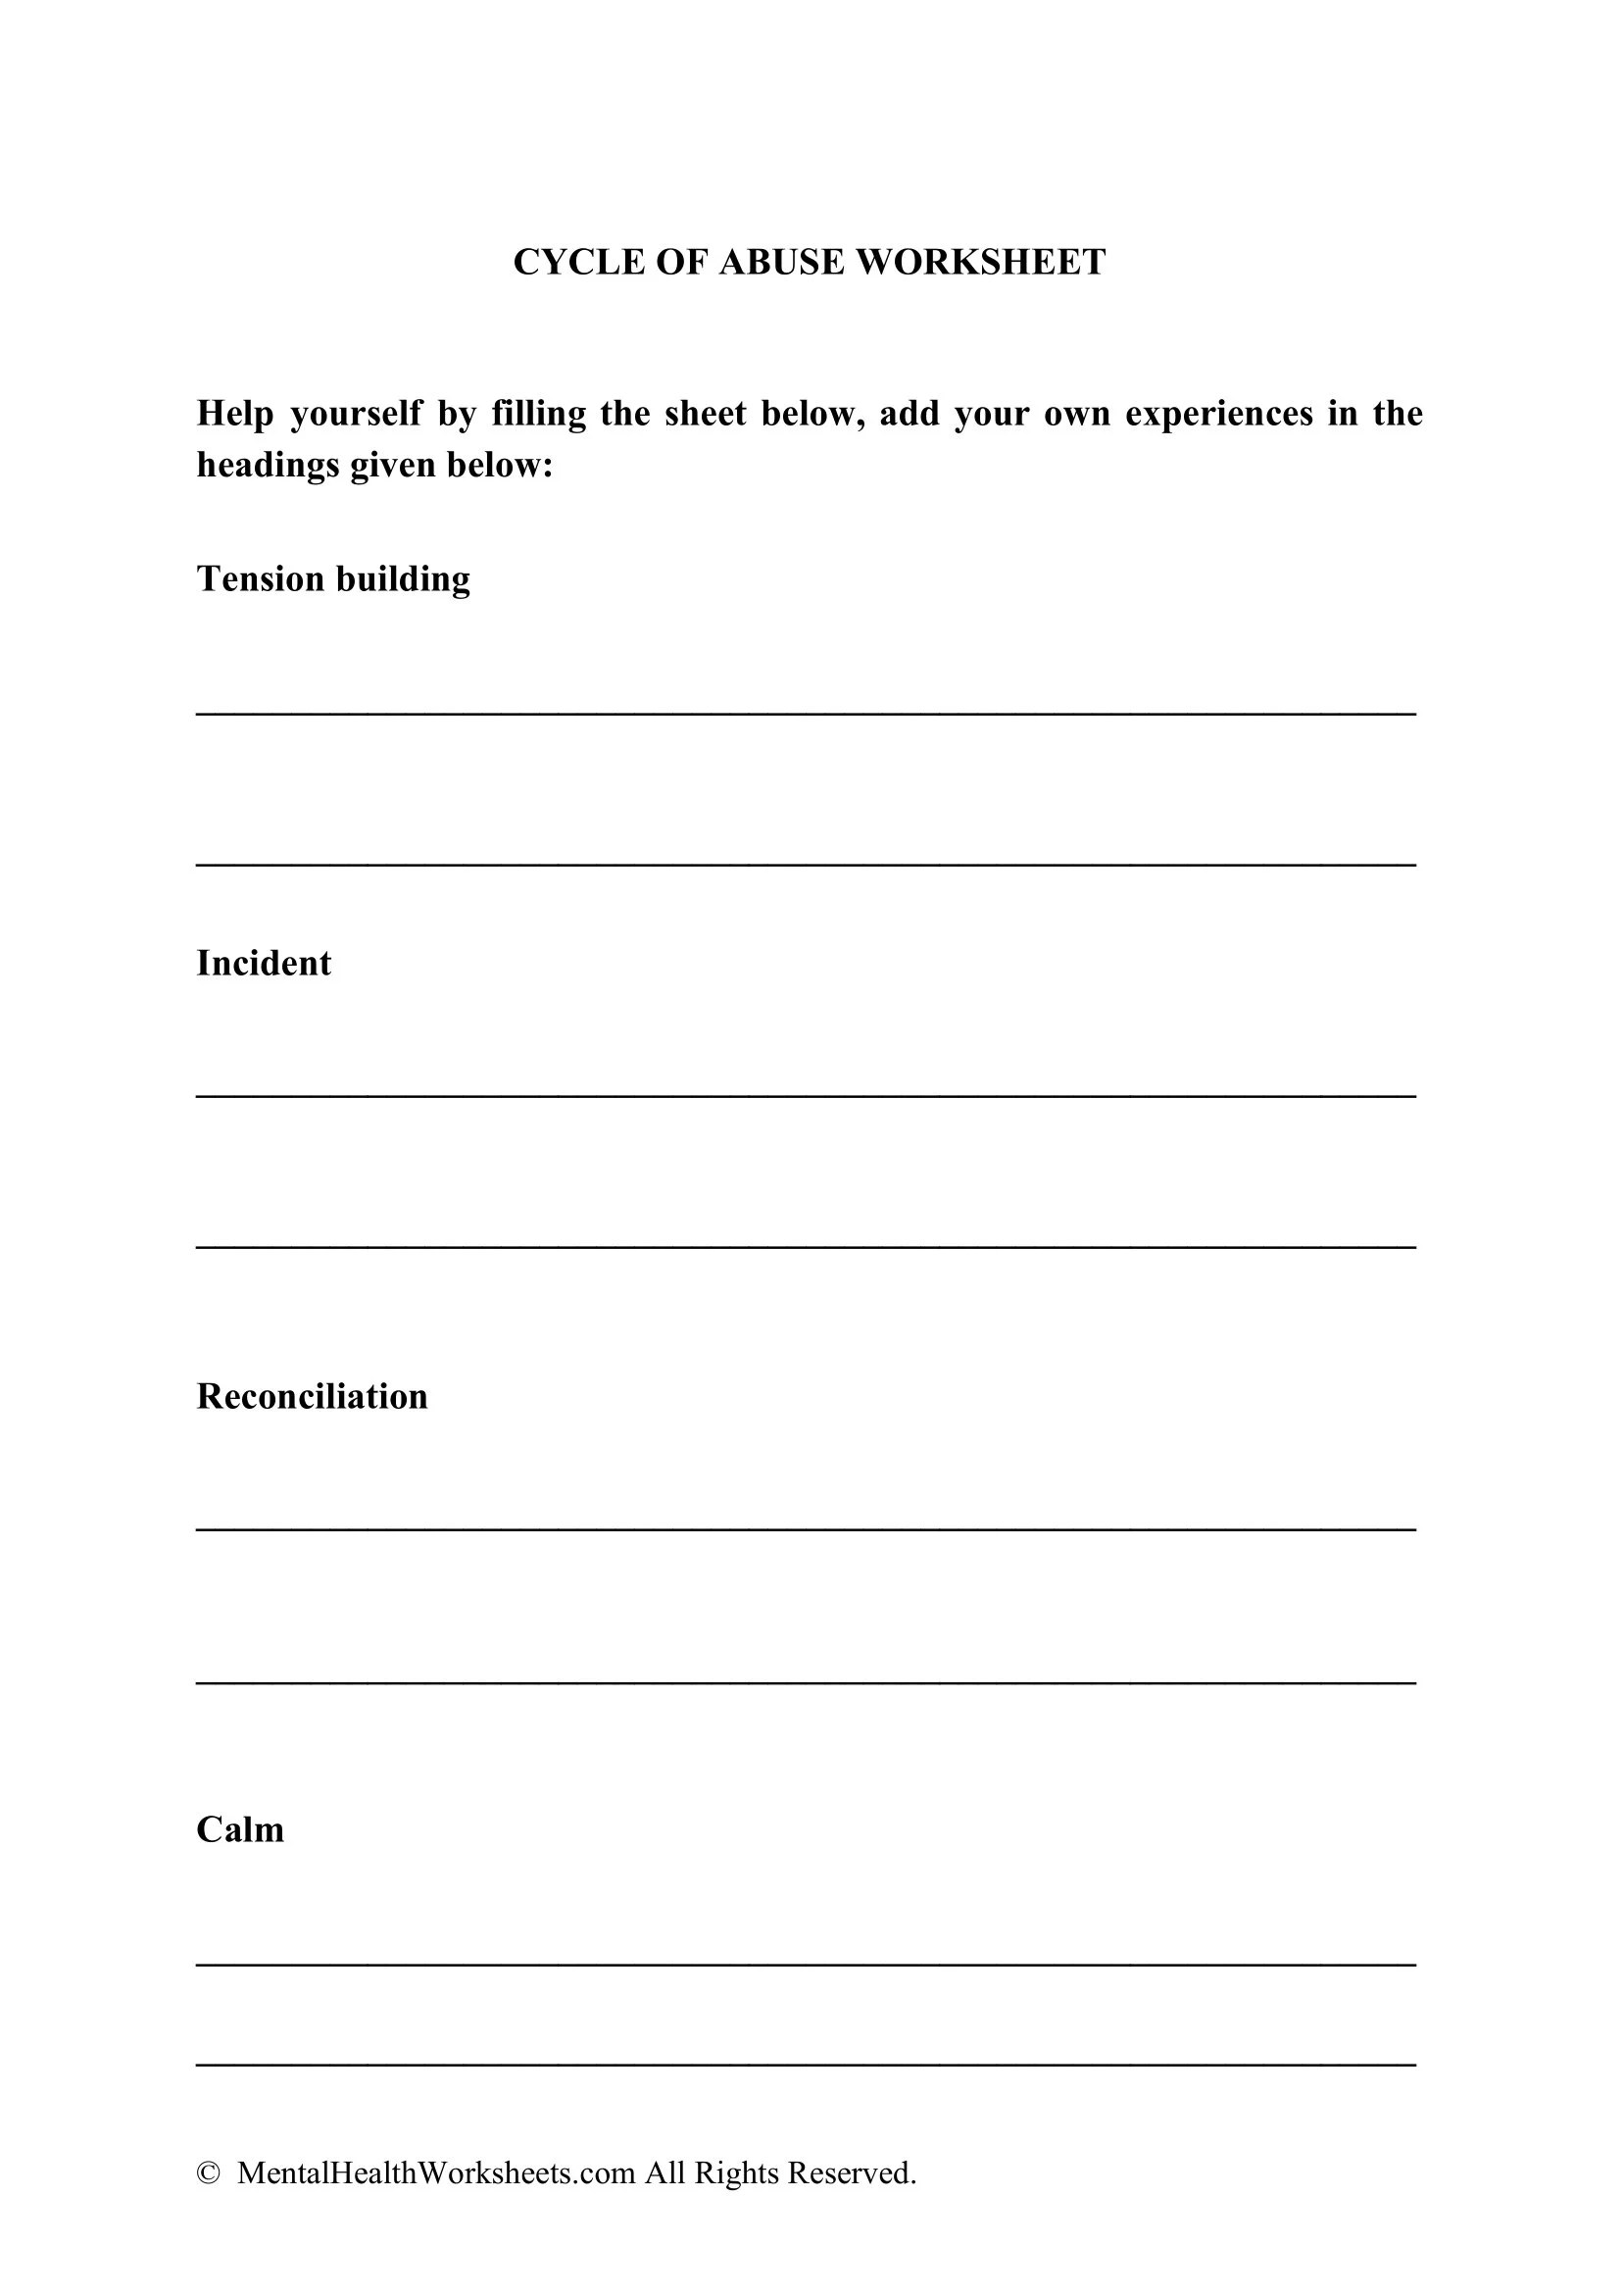 Cycle Of Abuse Worksheet